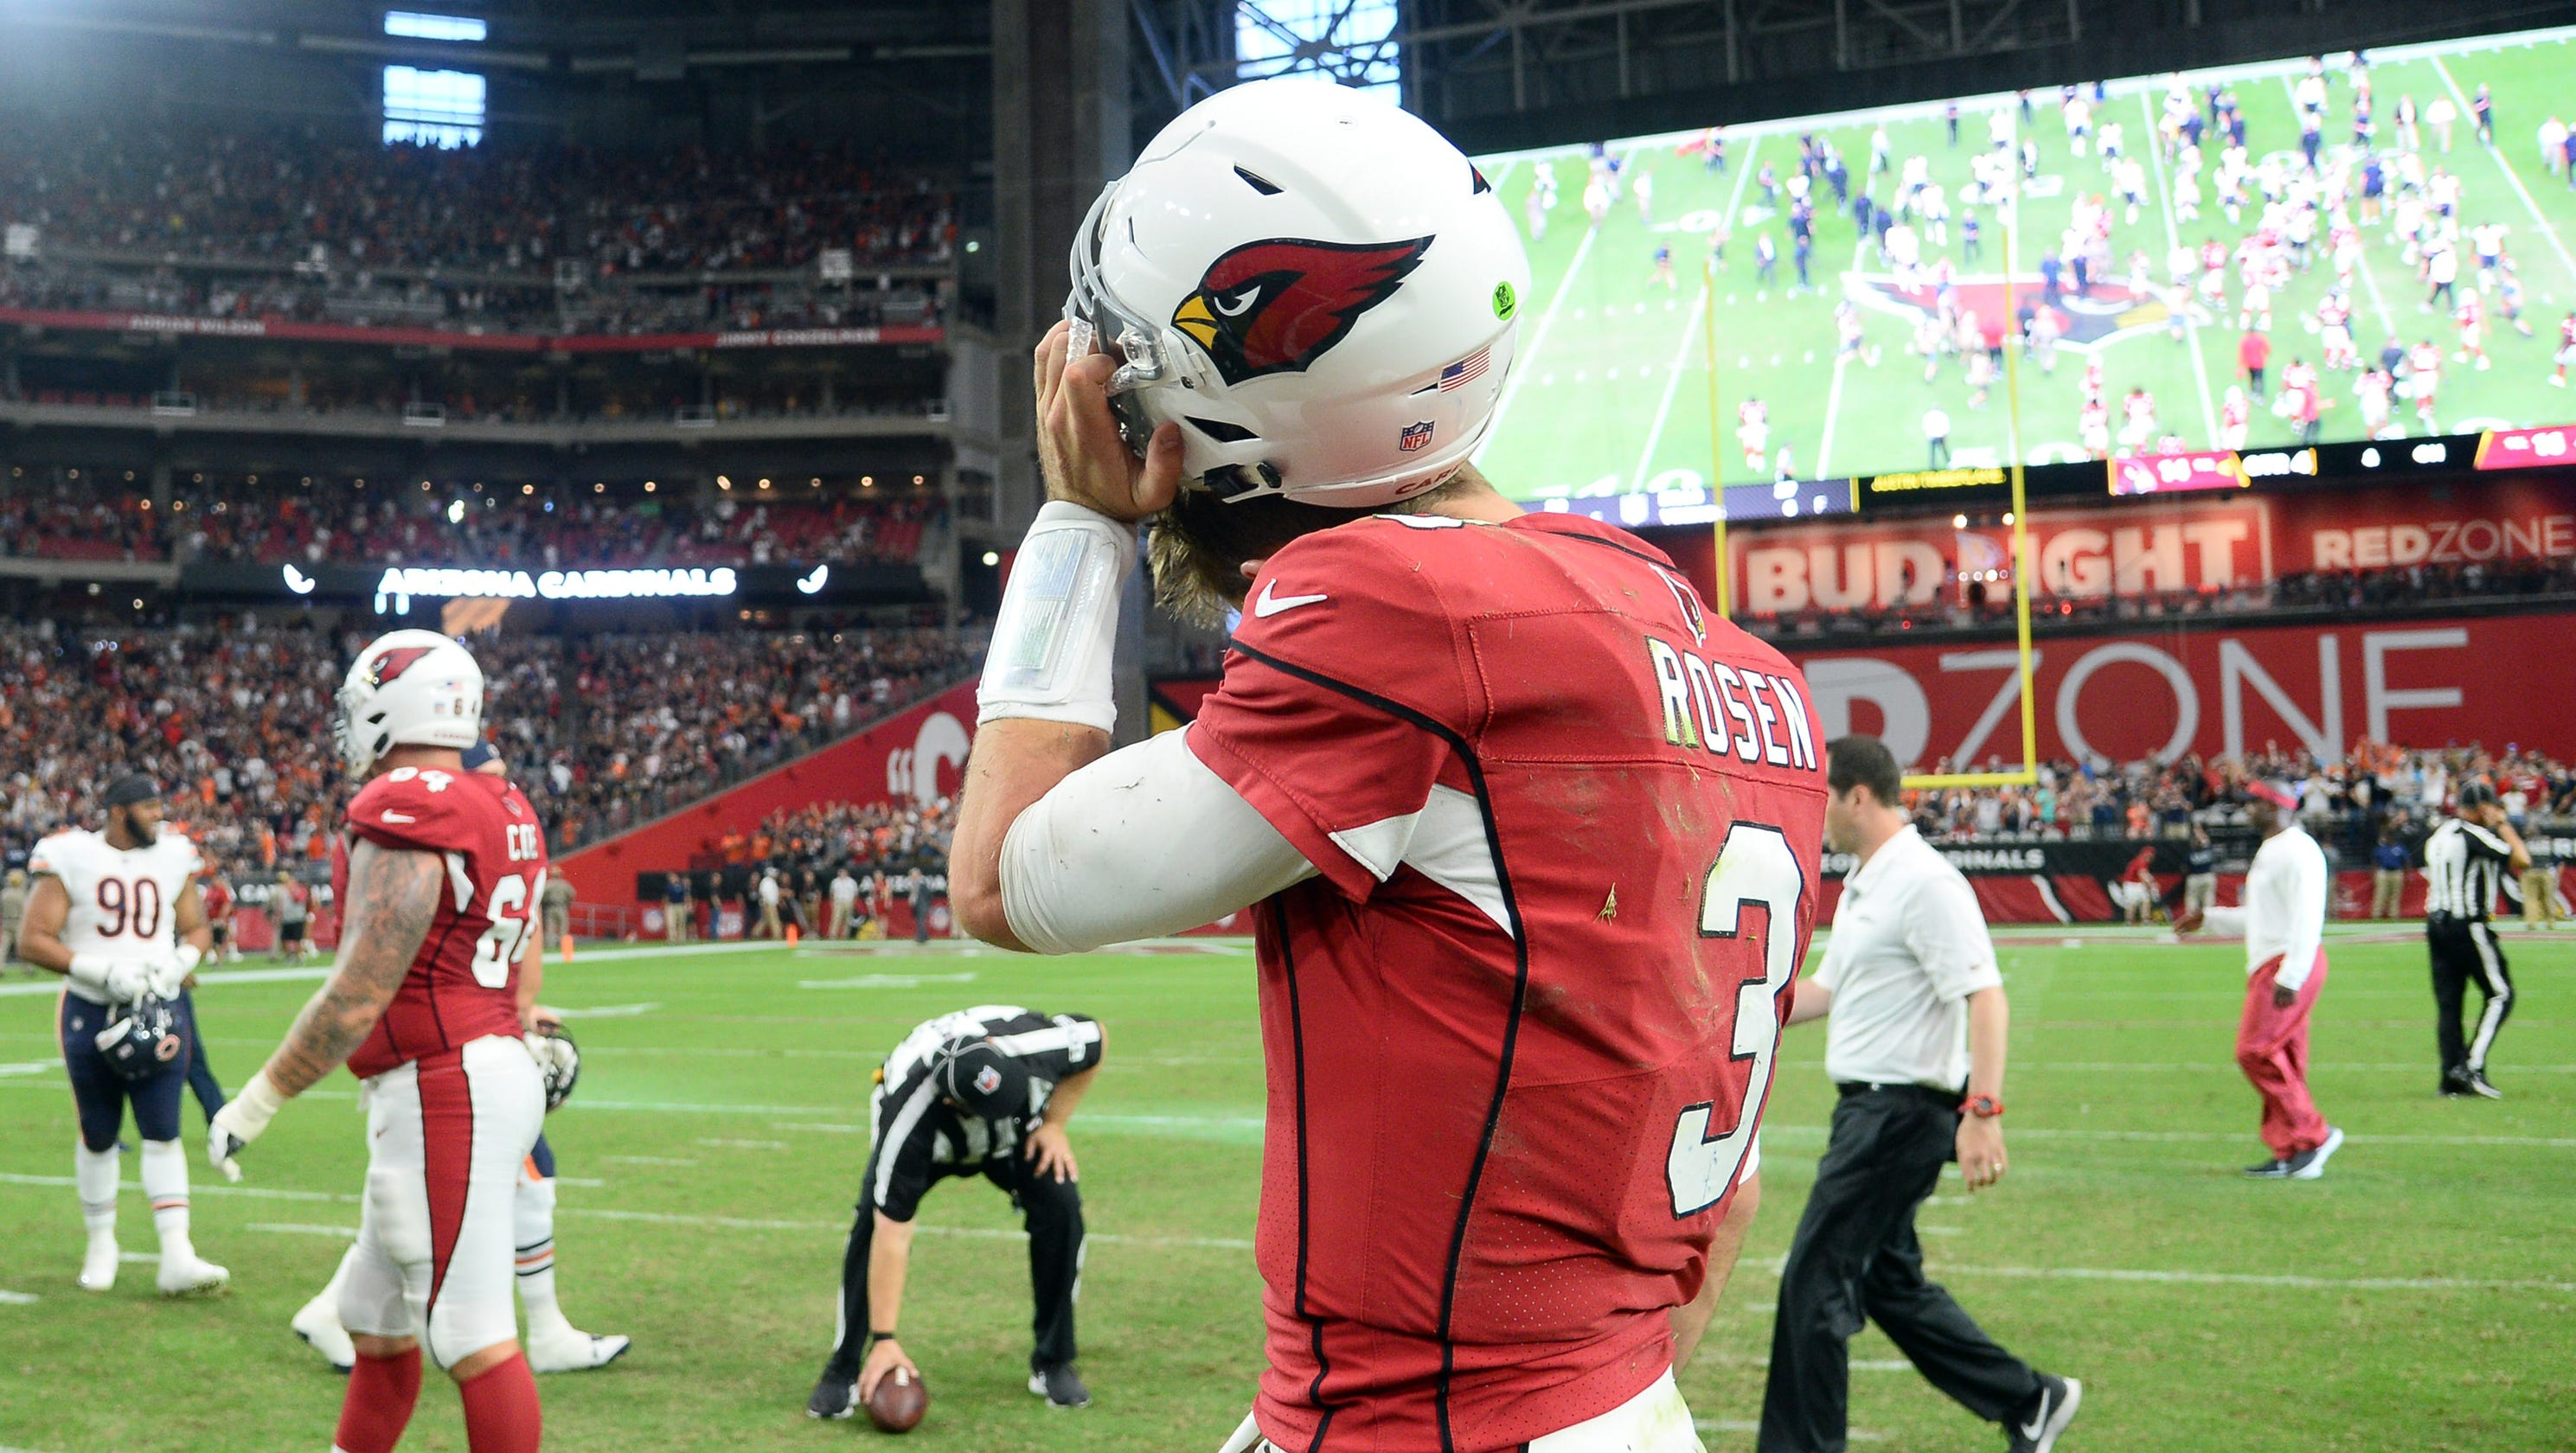 c8ee6e5a3 NFL power rankings: Rock bottom for Arizona Cardinals after loss to Chicago  Bears?